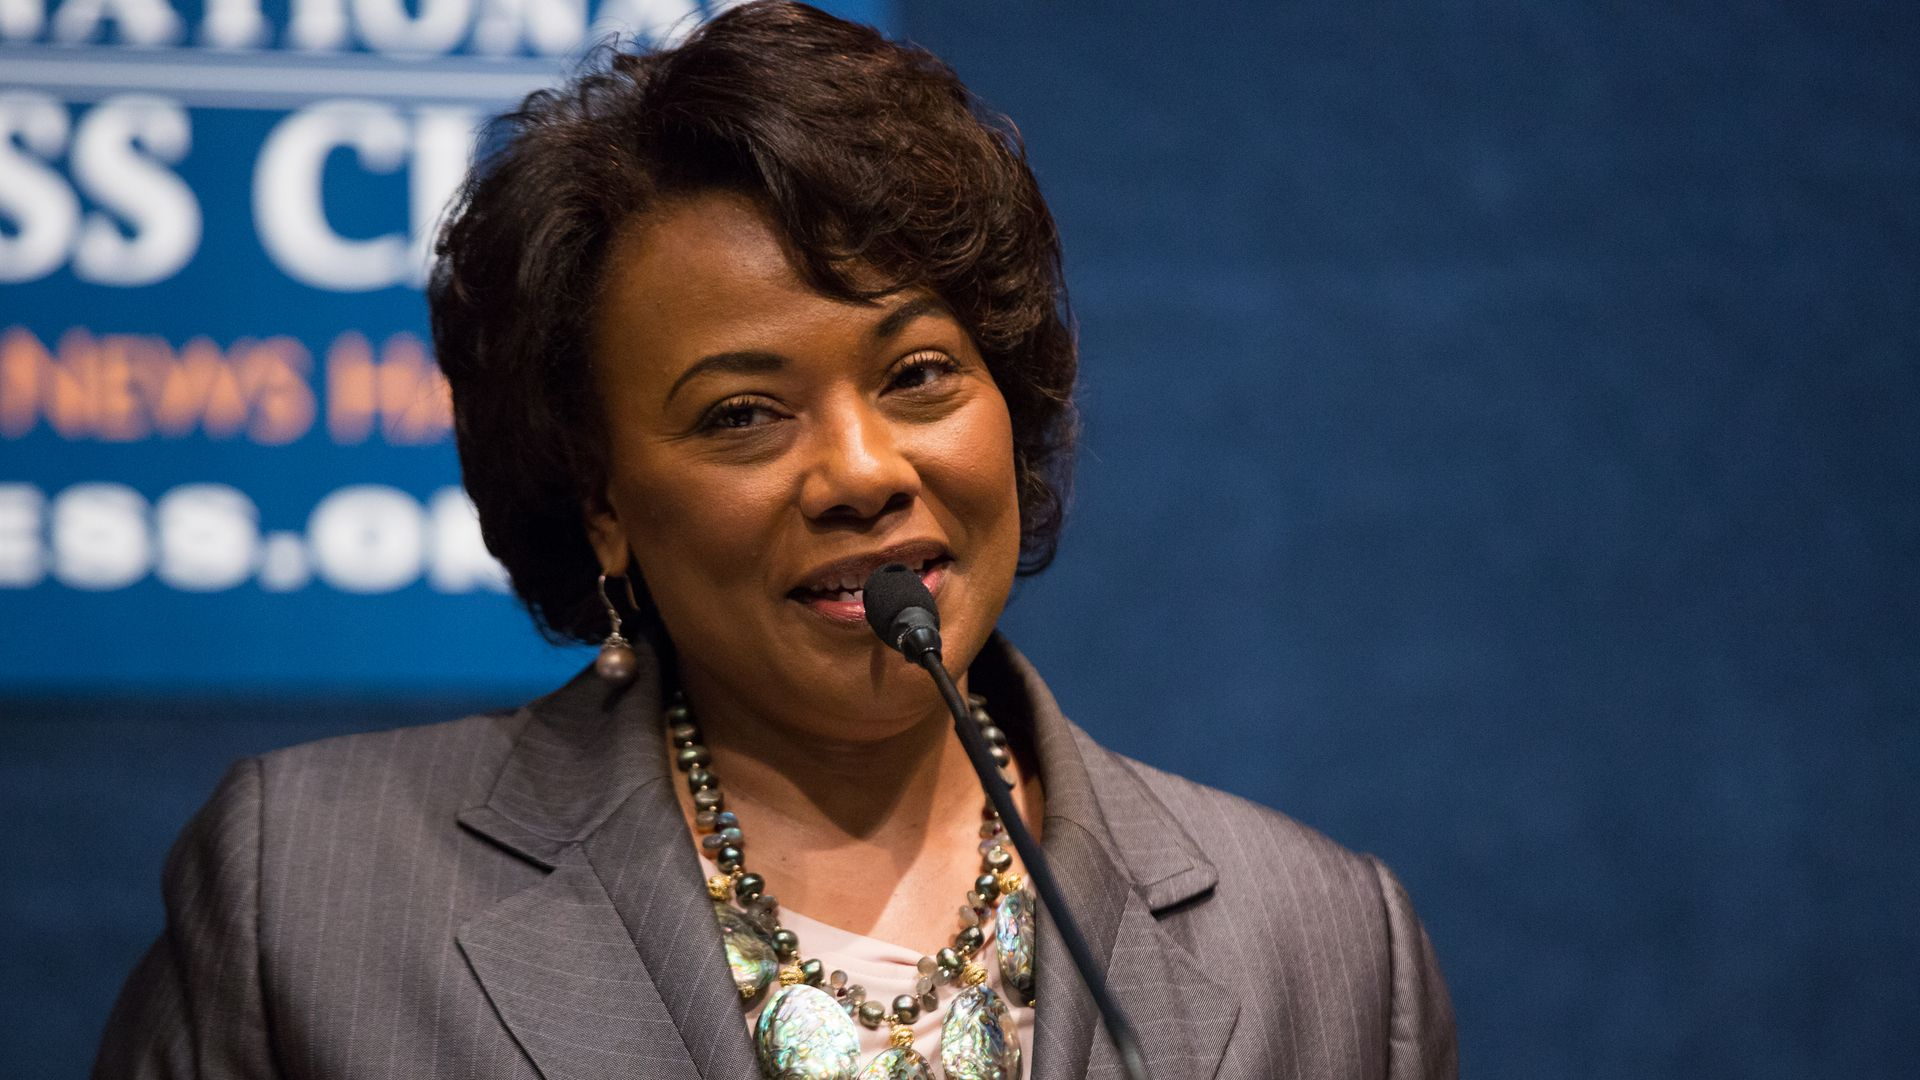 Rev. Bernice King gives a speech at the National Press Club